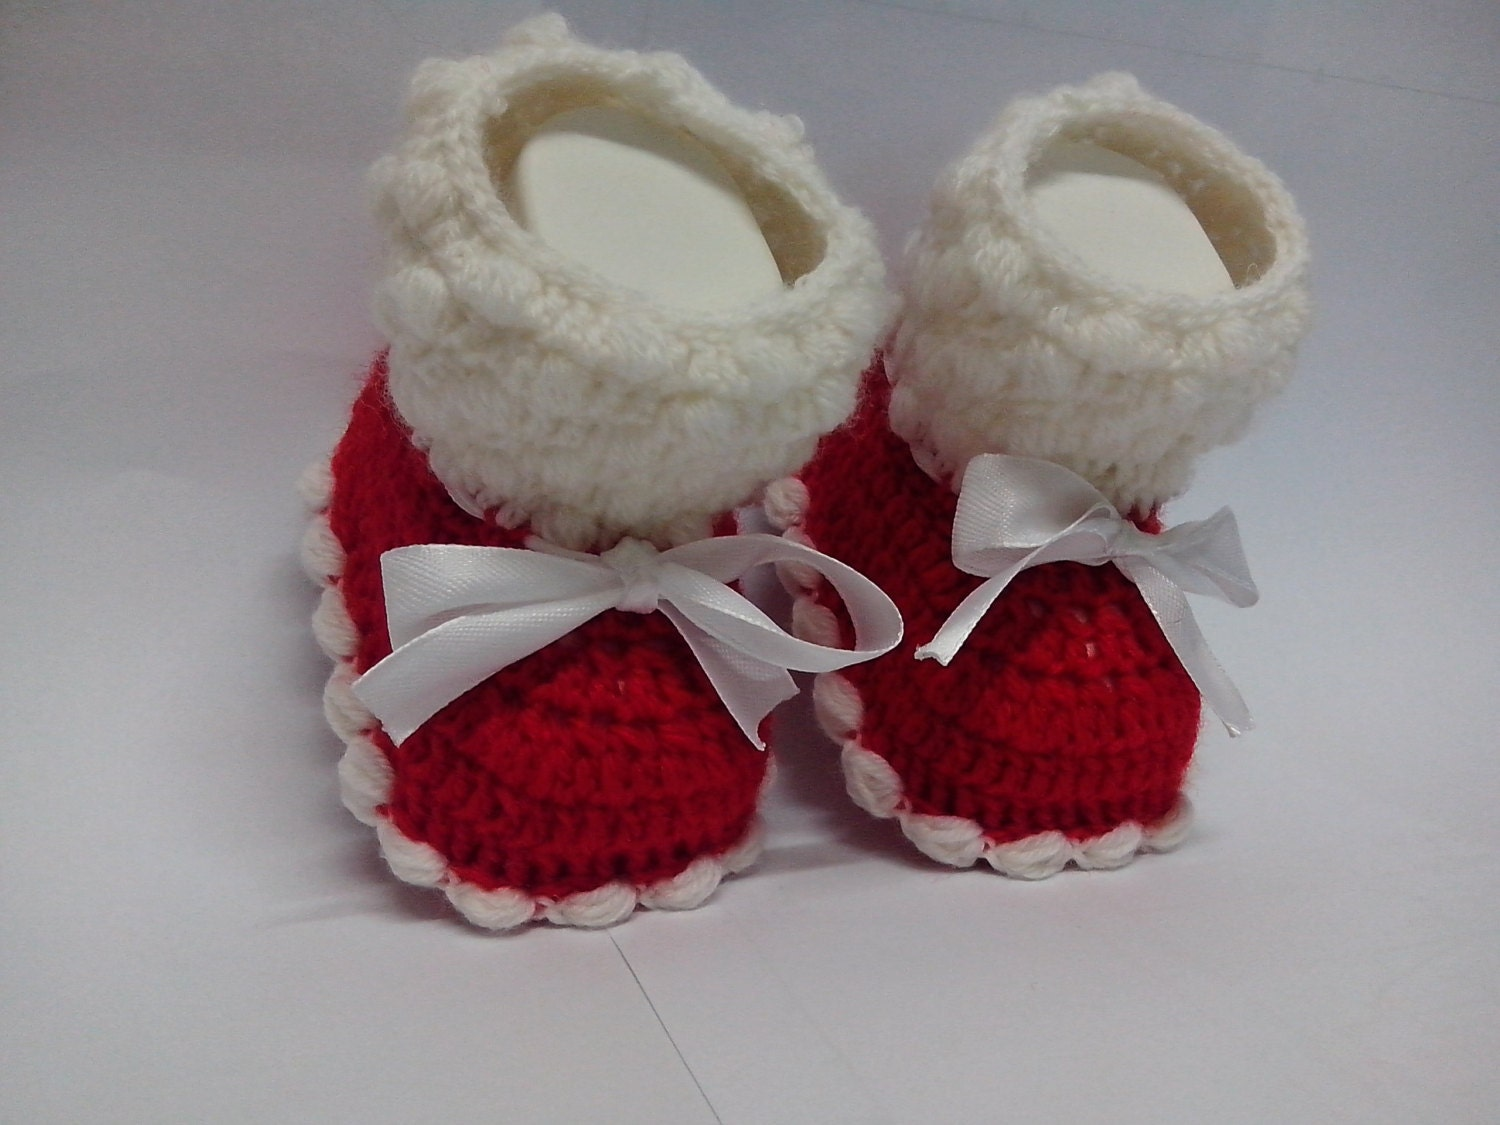 Product - Infant Boys & Girls Plush Red Santa Claus Slippers Baby Christmas Shoes. Product Image. Price $ Product Title. Product - Infant Girls Plush Gray Koala Bear Baby Slippers Prewalk House Shoes. Product Image.